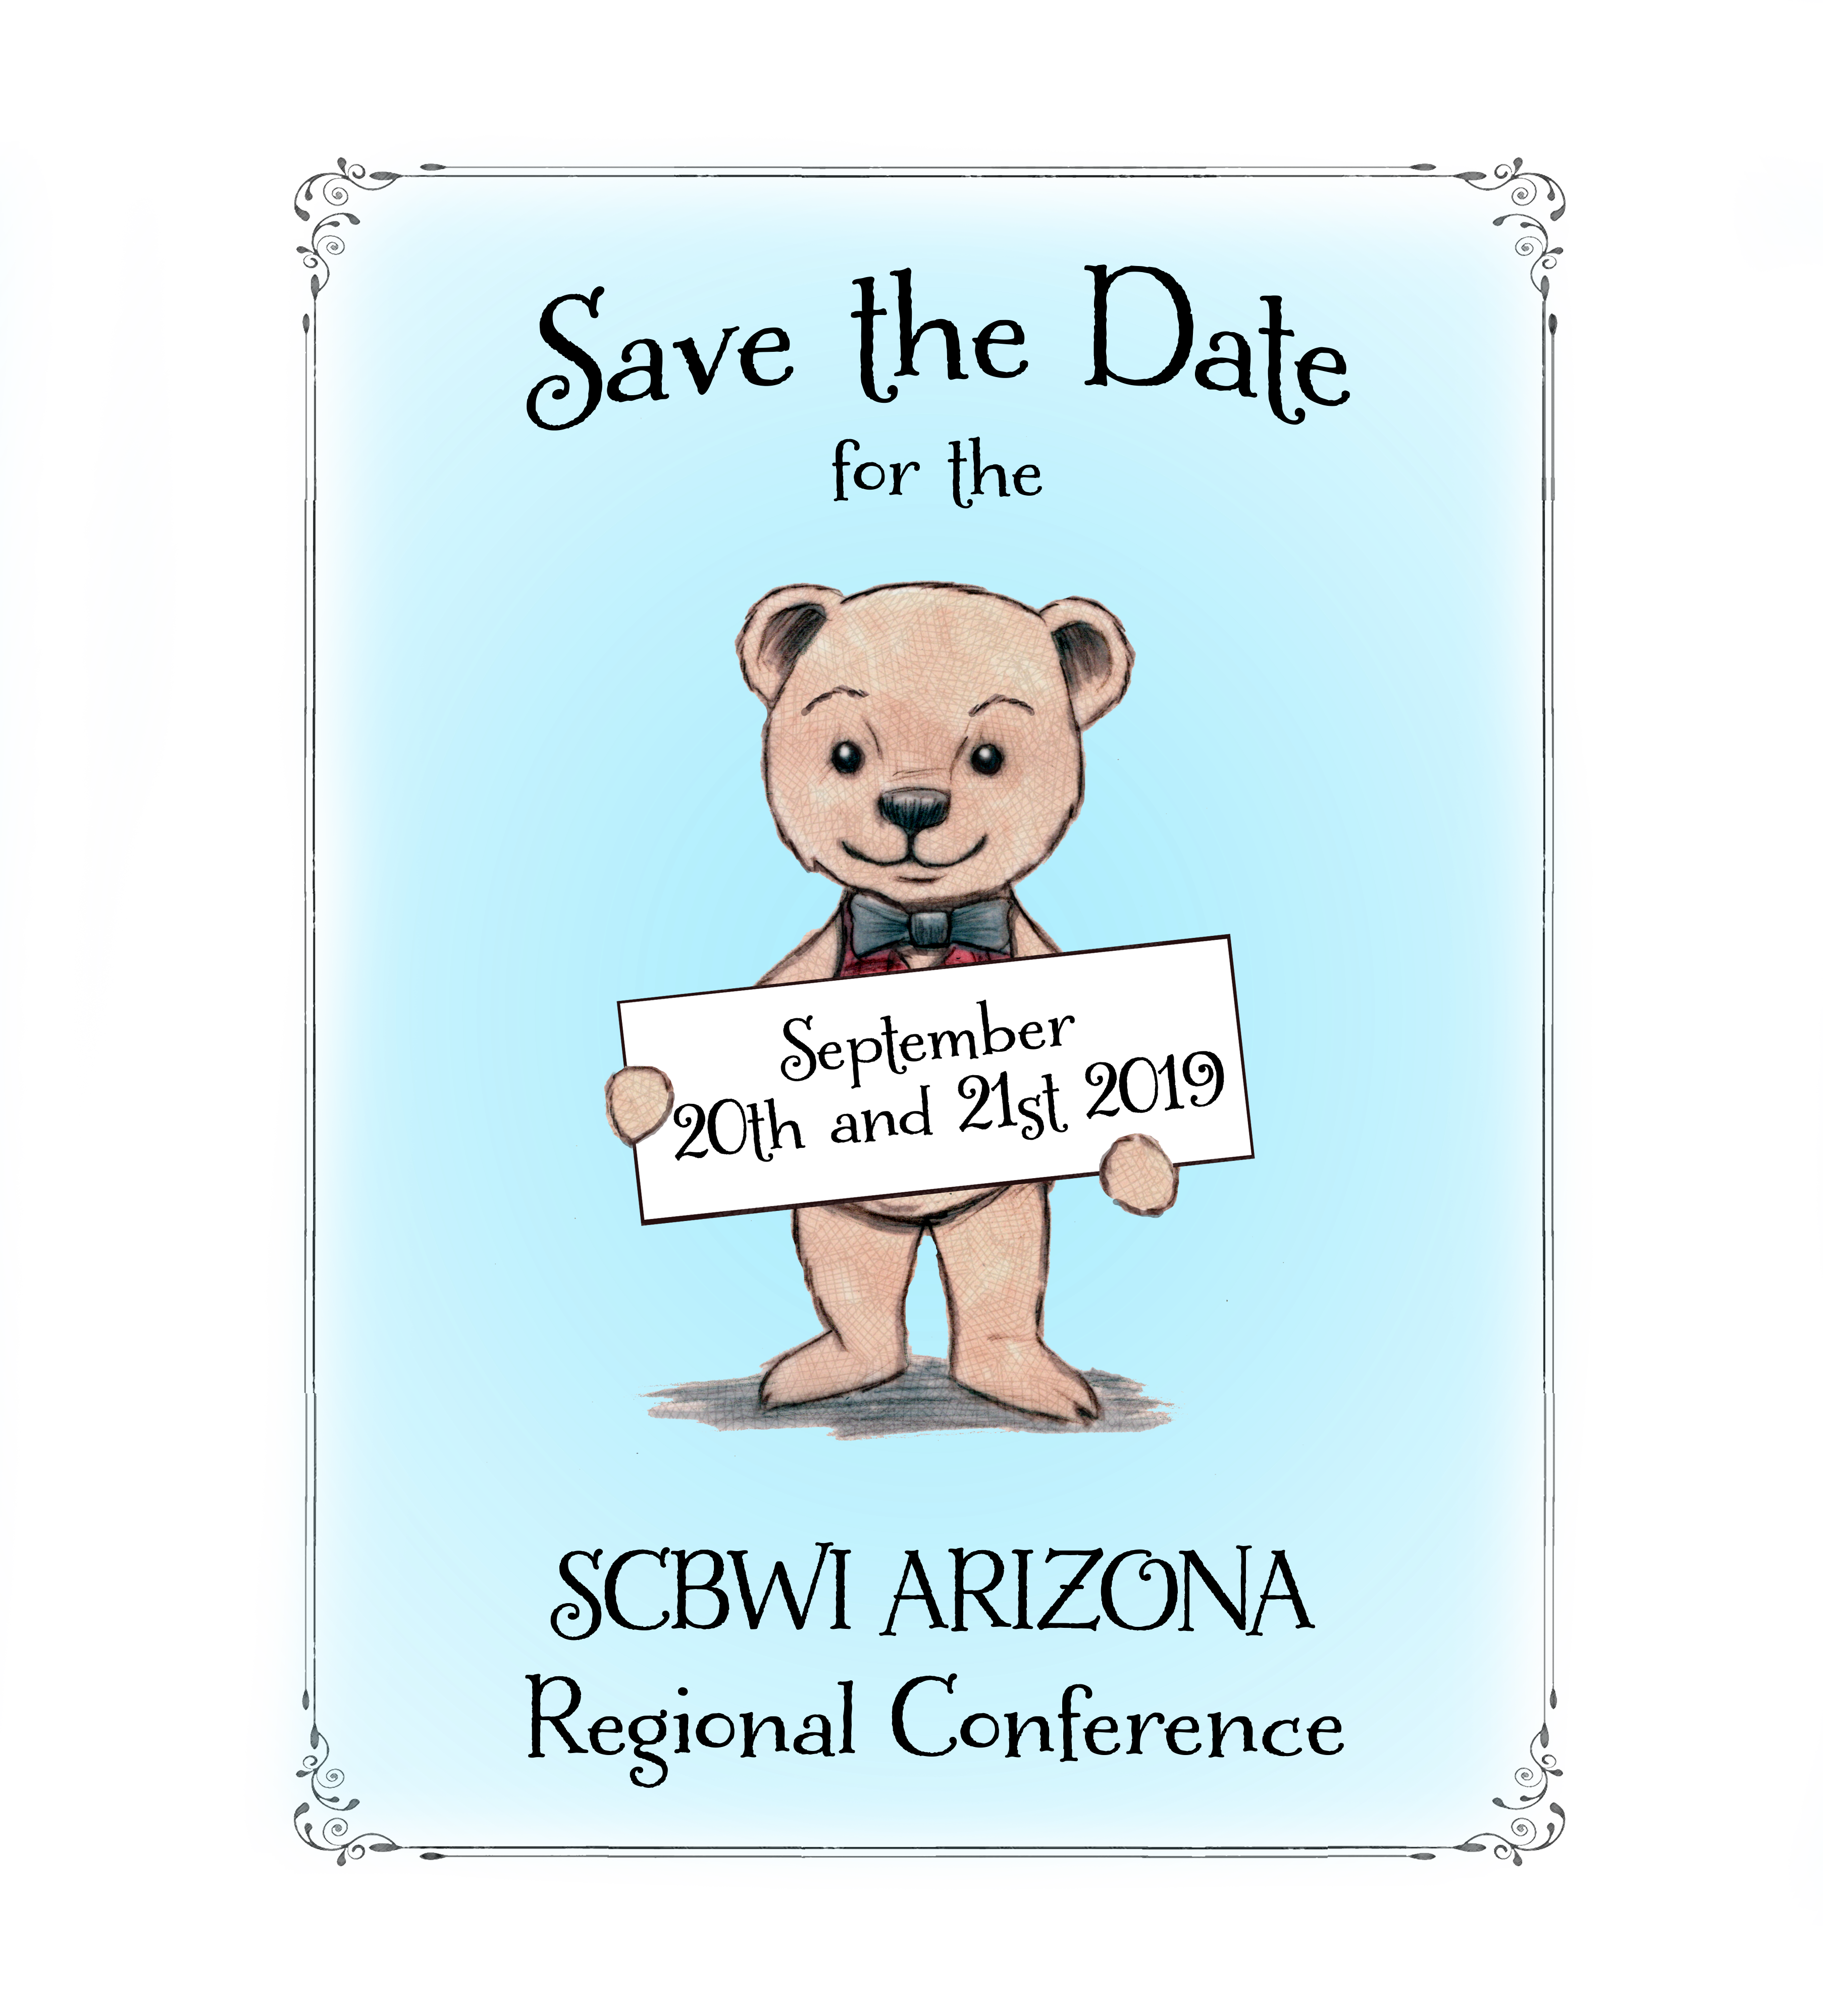 SCBWI AZ 2019 Regional Conference Date/Time Date(s) - 09/21/2019 8:00 am - 6:00 pm https://arizona.scbwi.org/events/scbwi-az-2019-regional-conference/